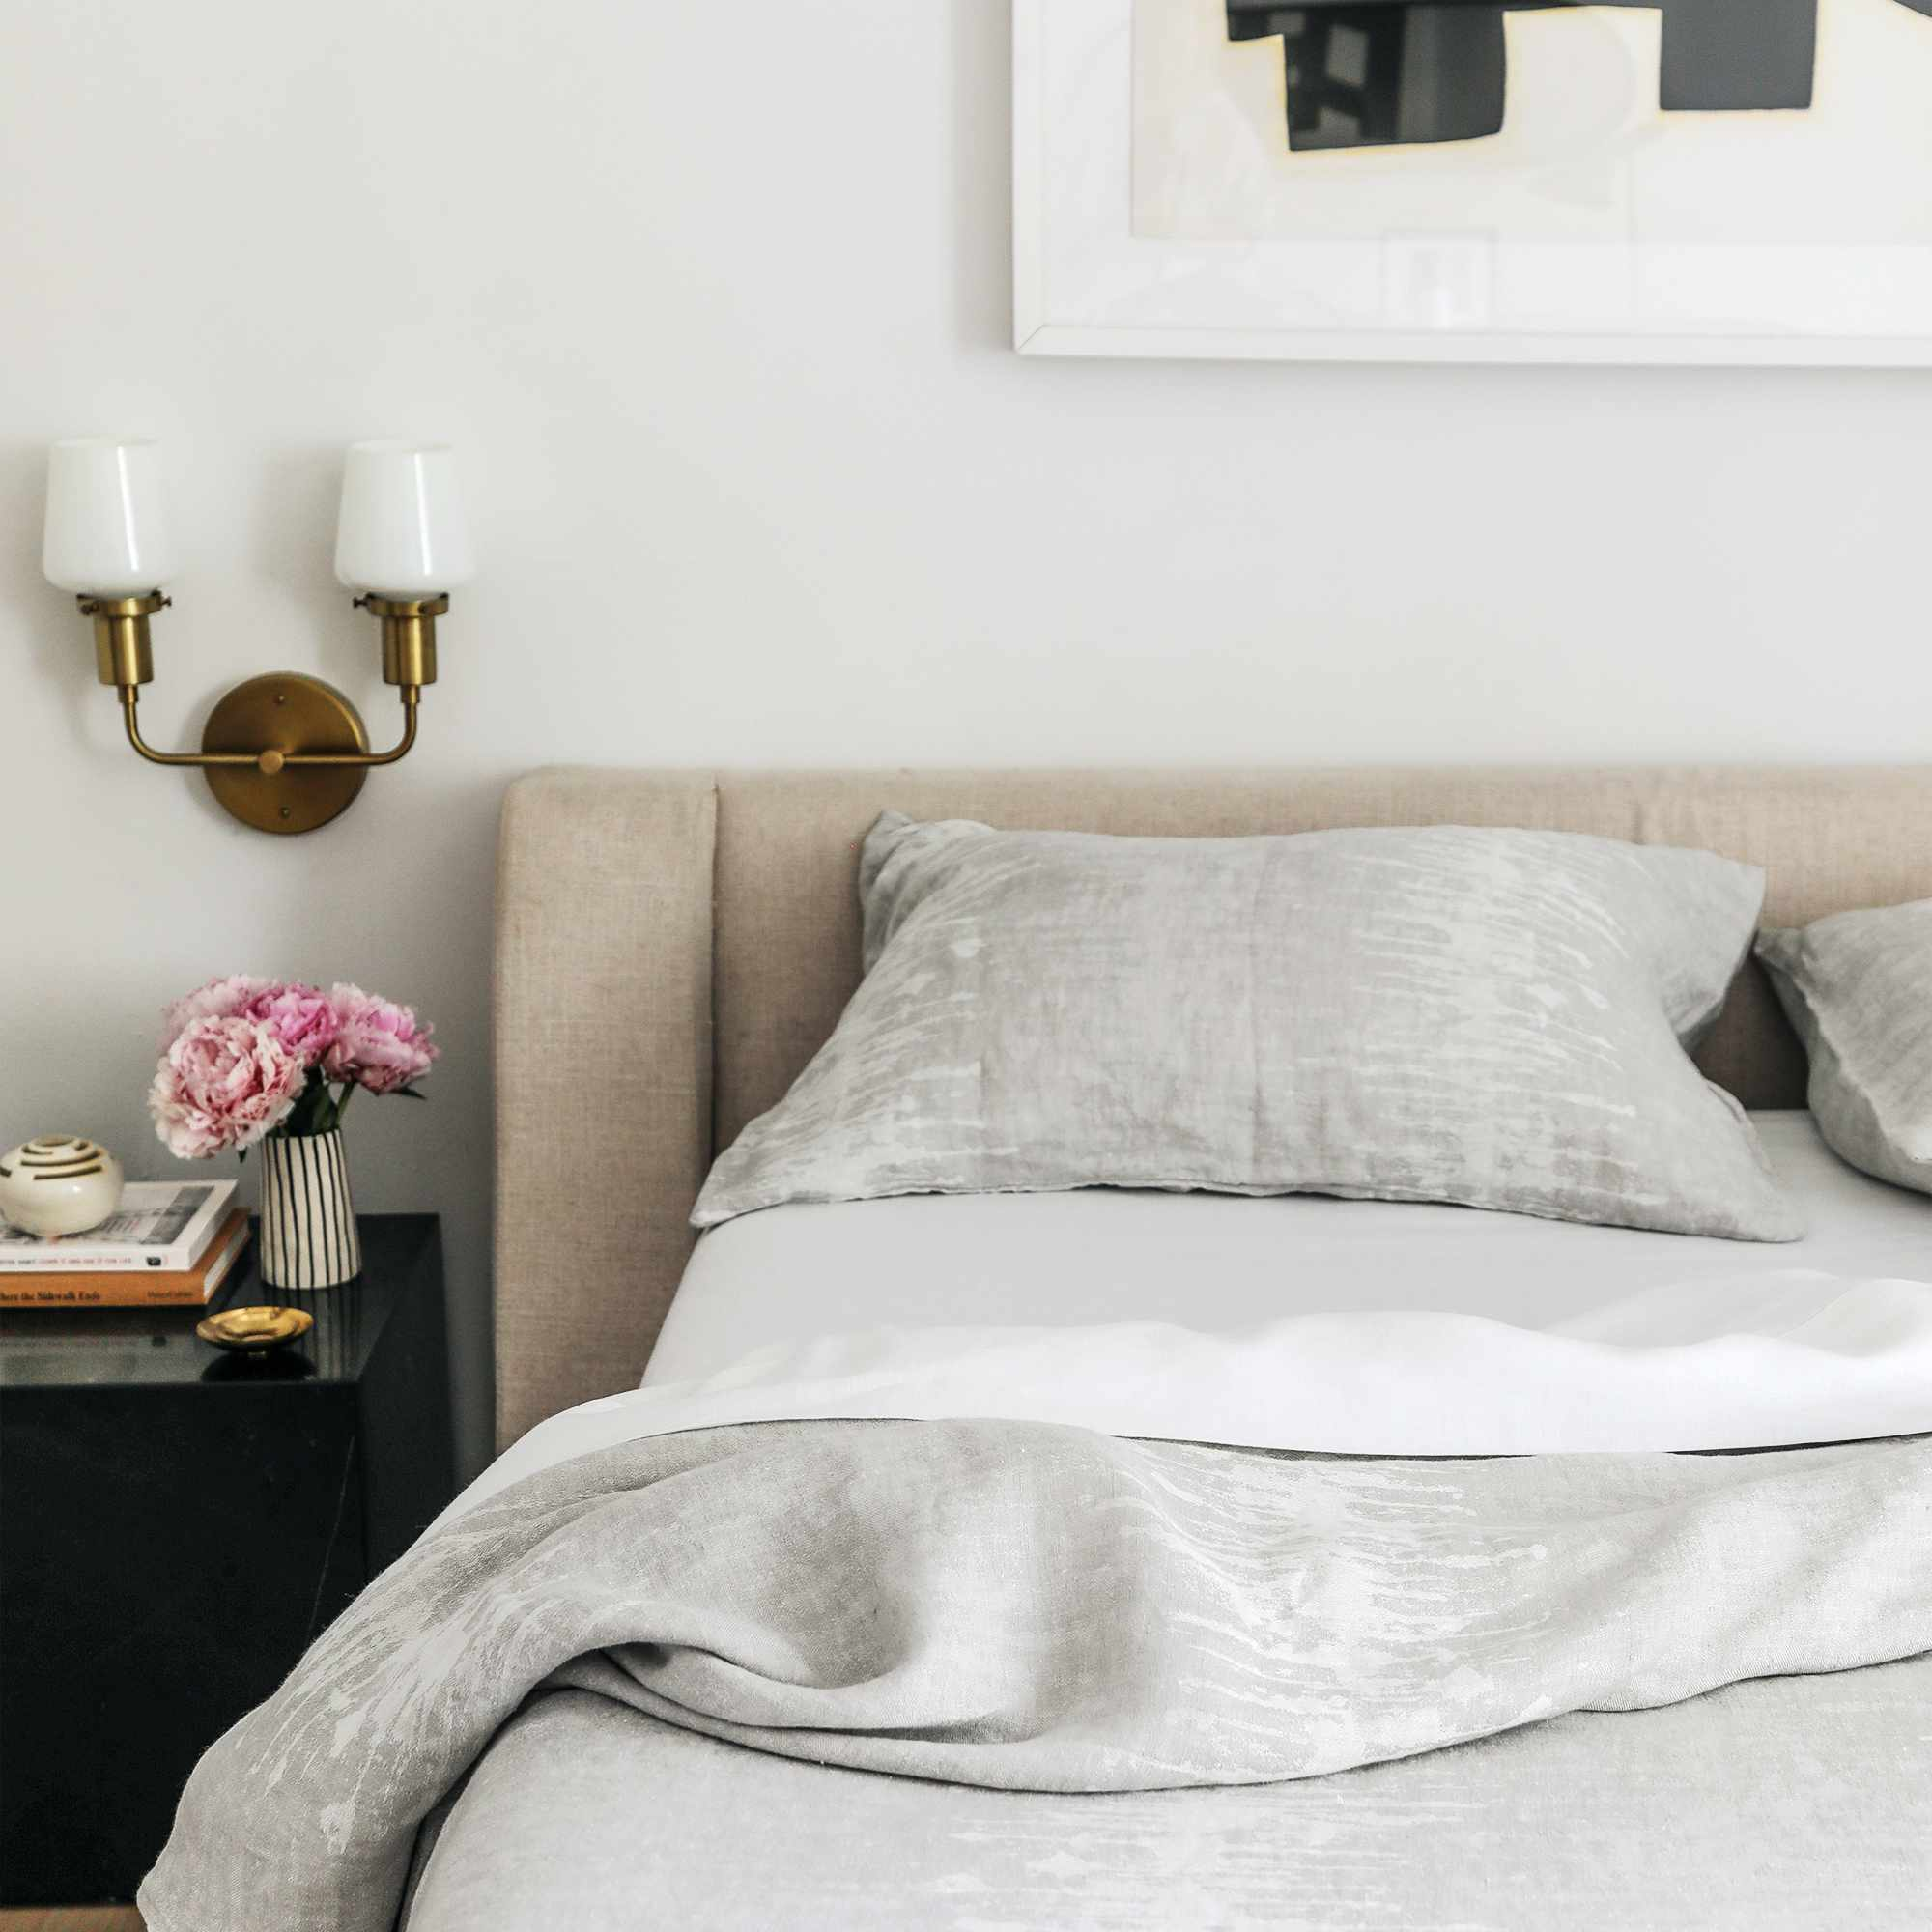 Neutral bed with cozy linen bedding